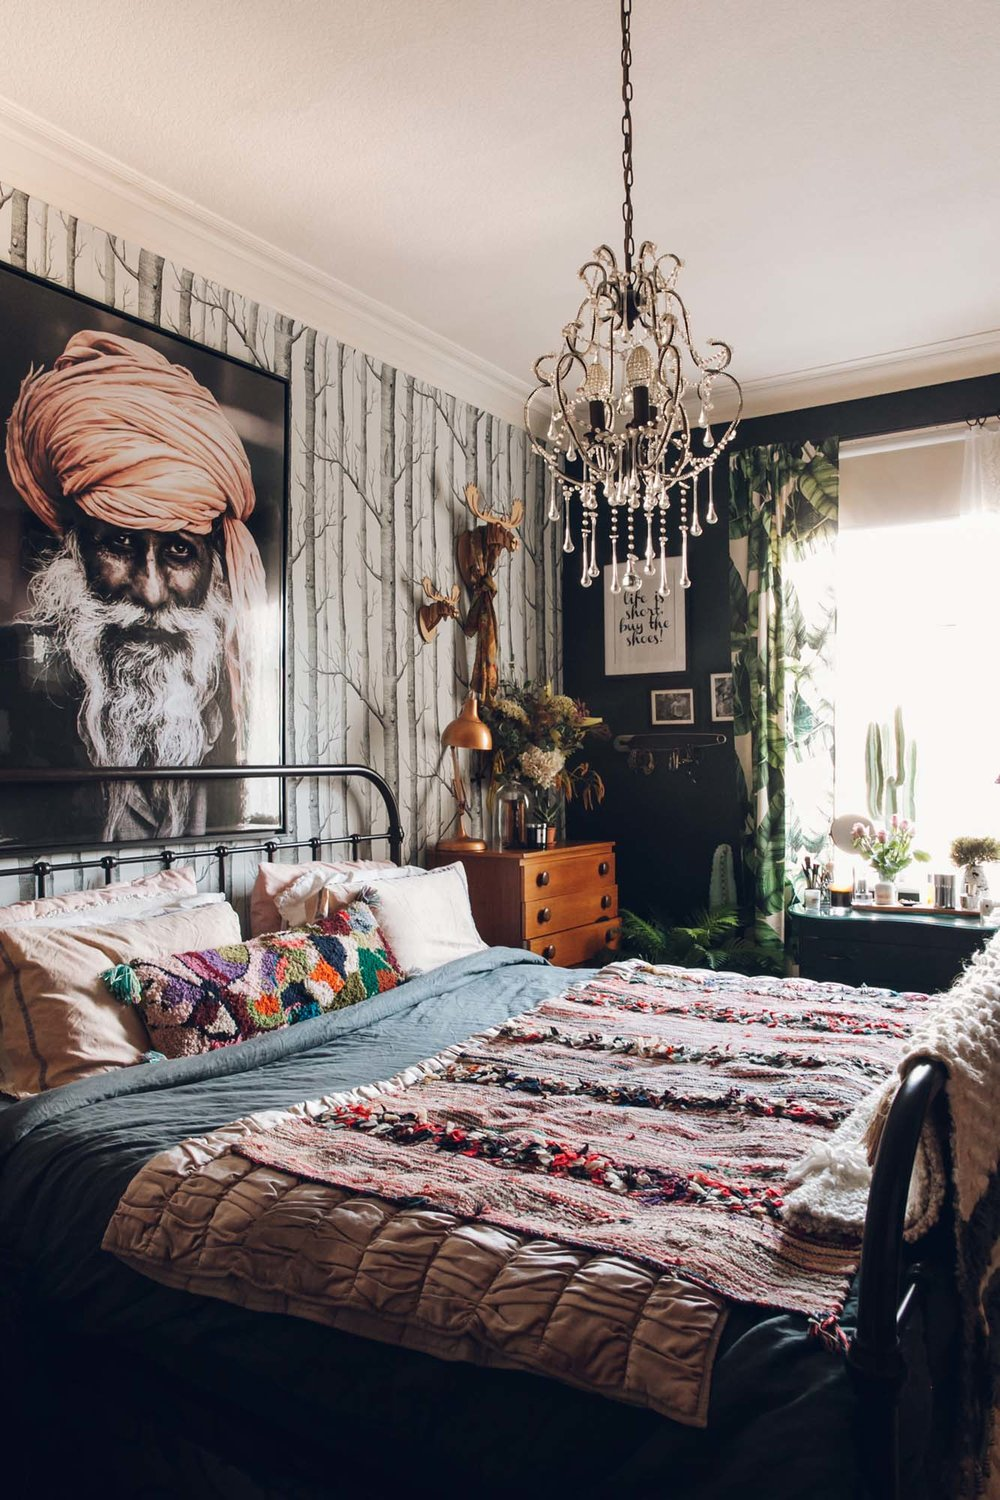 Nicola's bedroom rocks the eclectic boho look, no thanks to the hubby